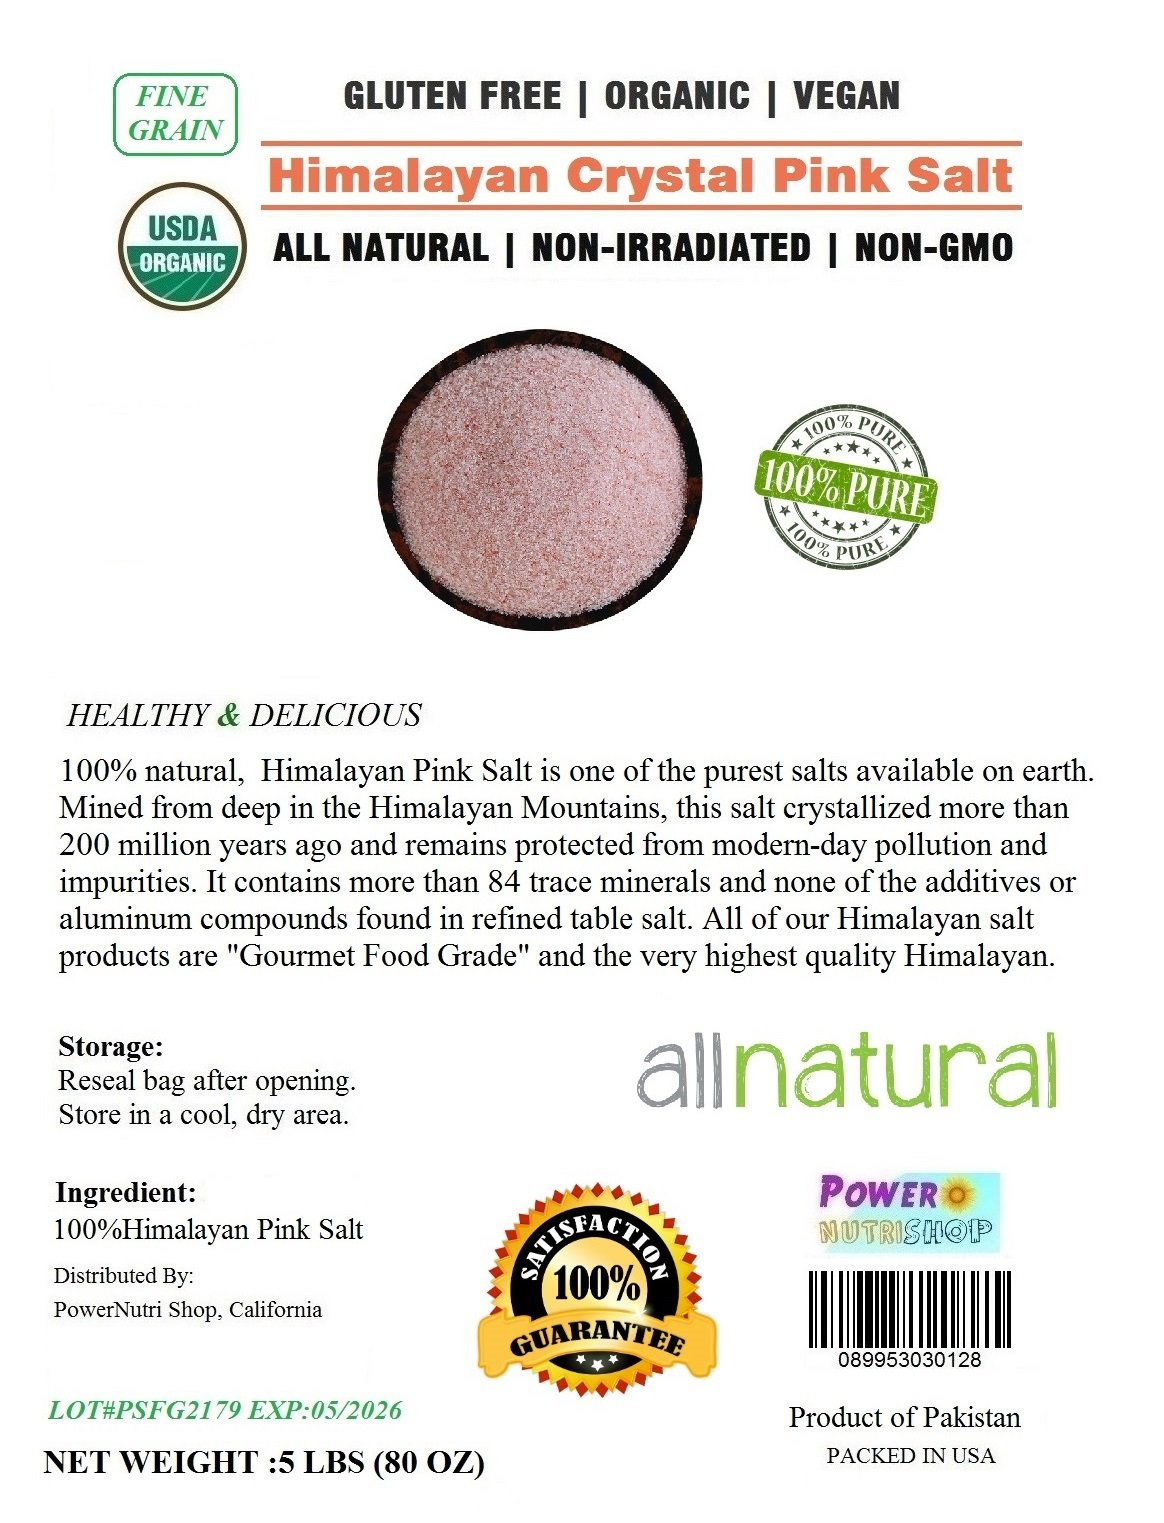 ALL Natural Organic Himalayan Crystal Pink Salt (Fine Grain) Ancient Sea Salt (5 LBS Bag)